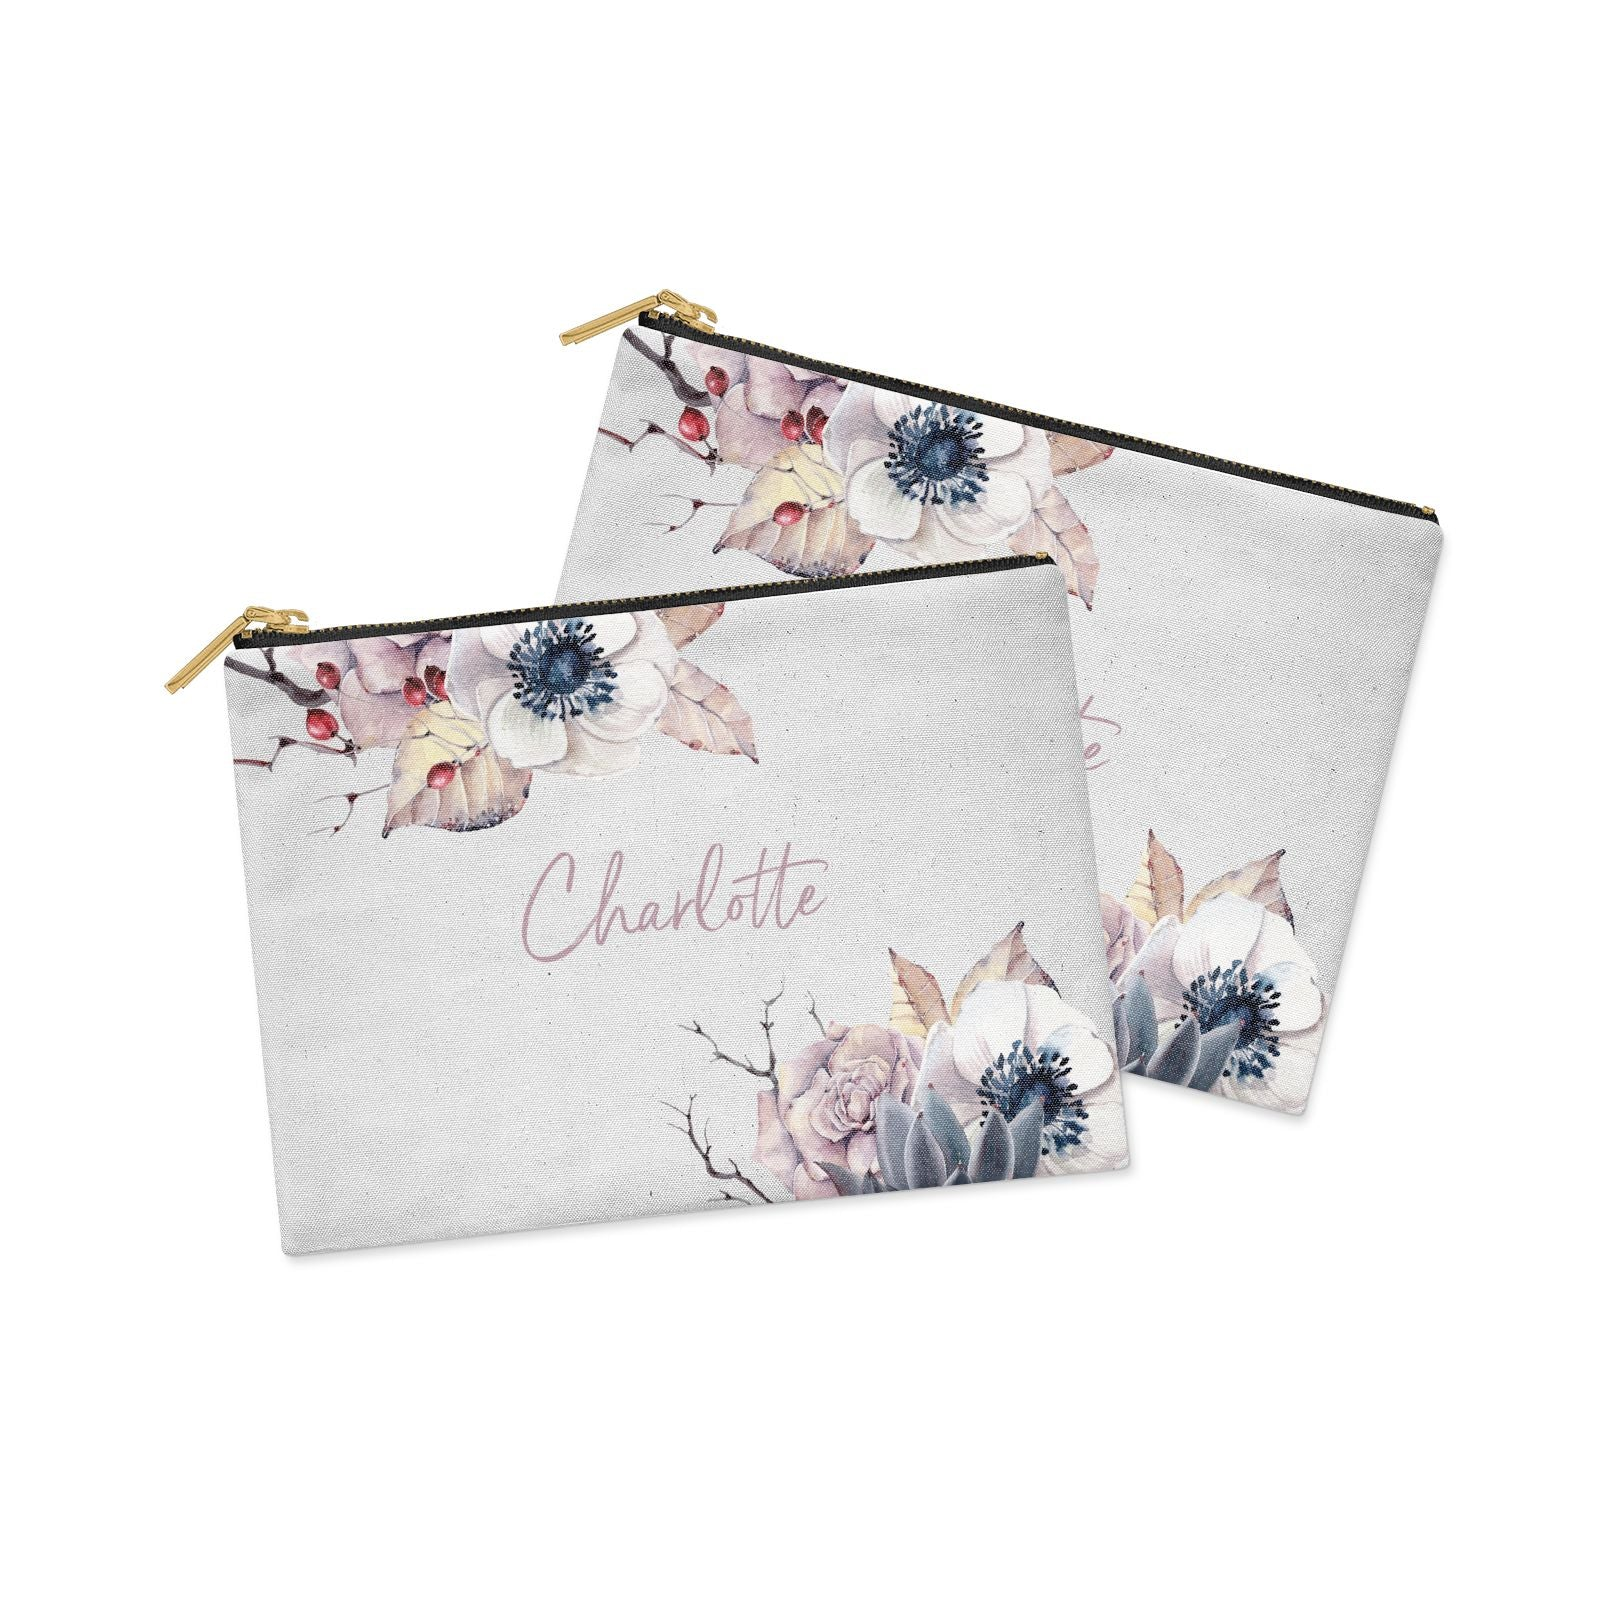 Personalised Autumn Floral Clutch Bag Zipper Pouch Alternative View